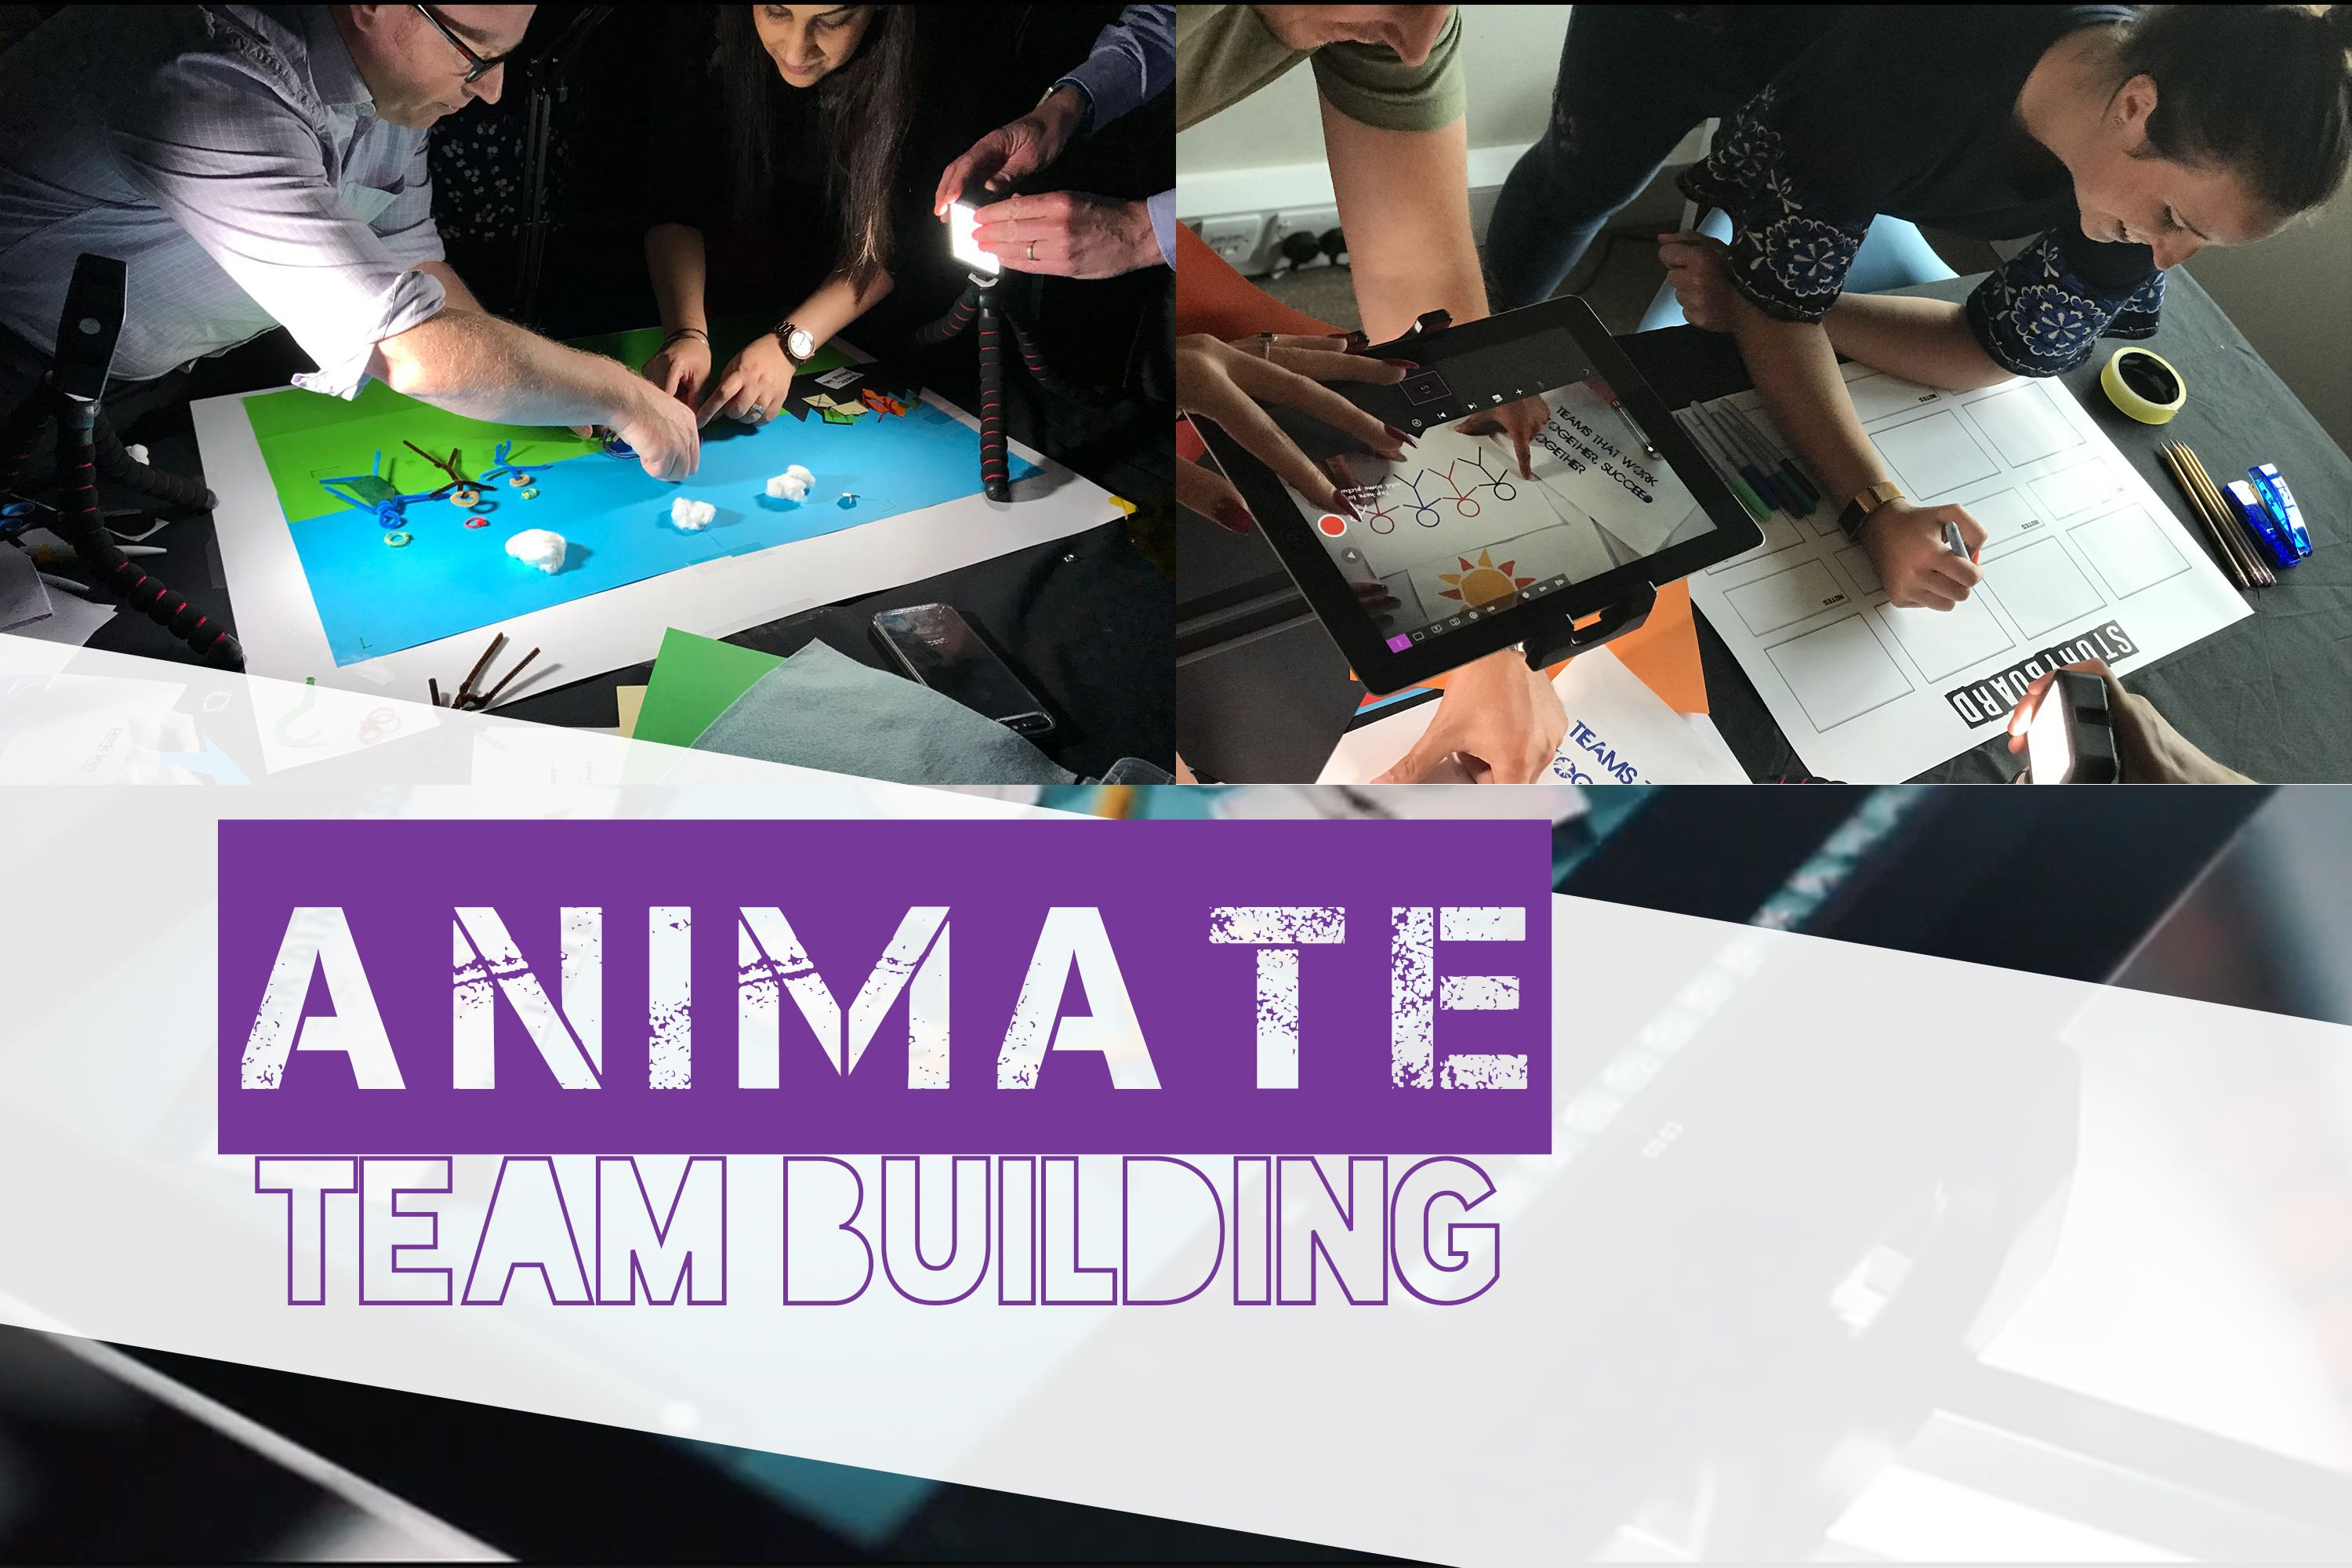 Enjoy some creative team building activities with your